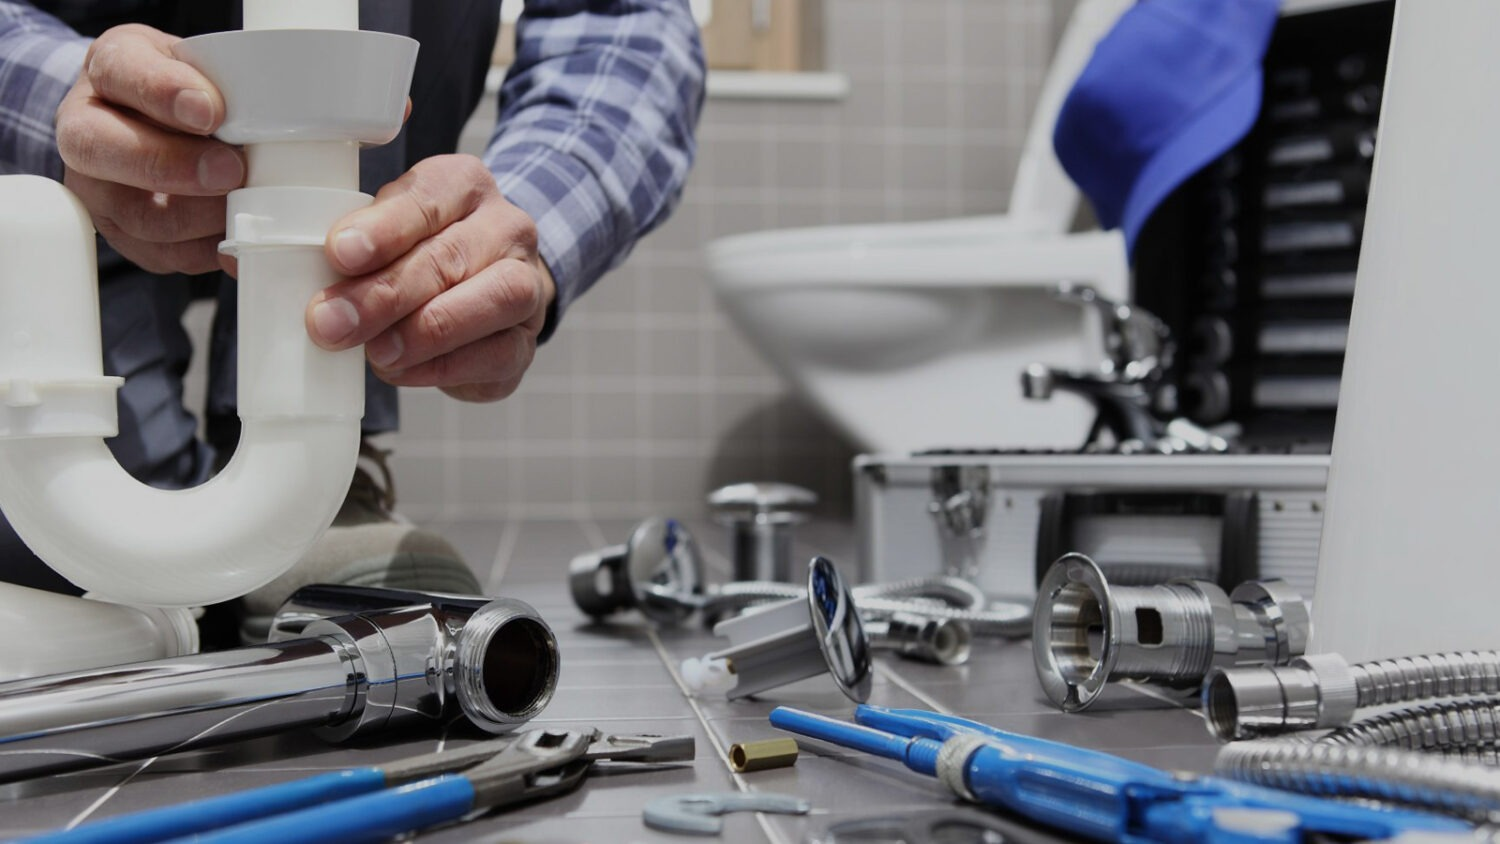 How To Find The Best Plumbing Professionals In Eastern Creek?